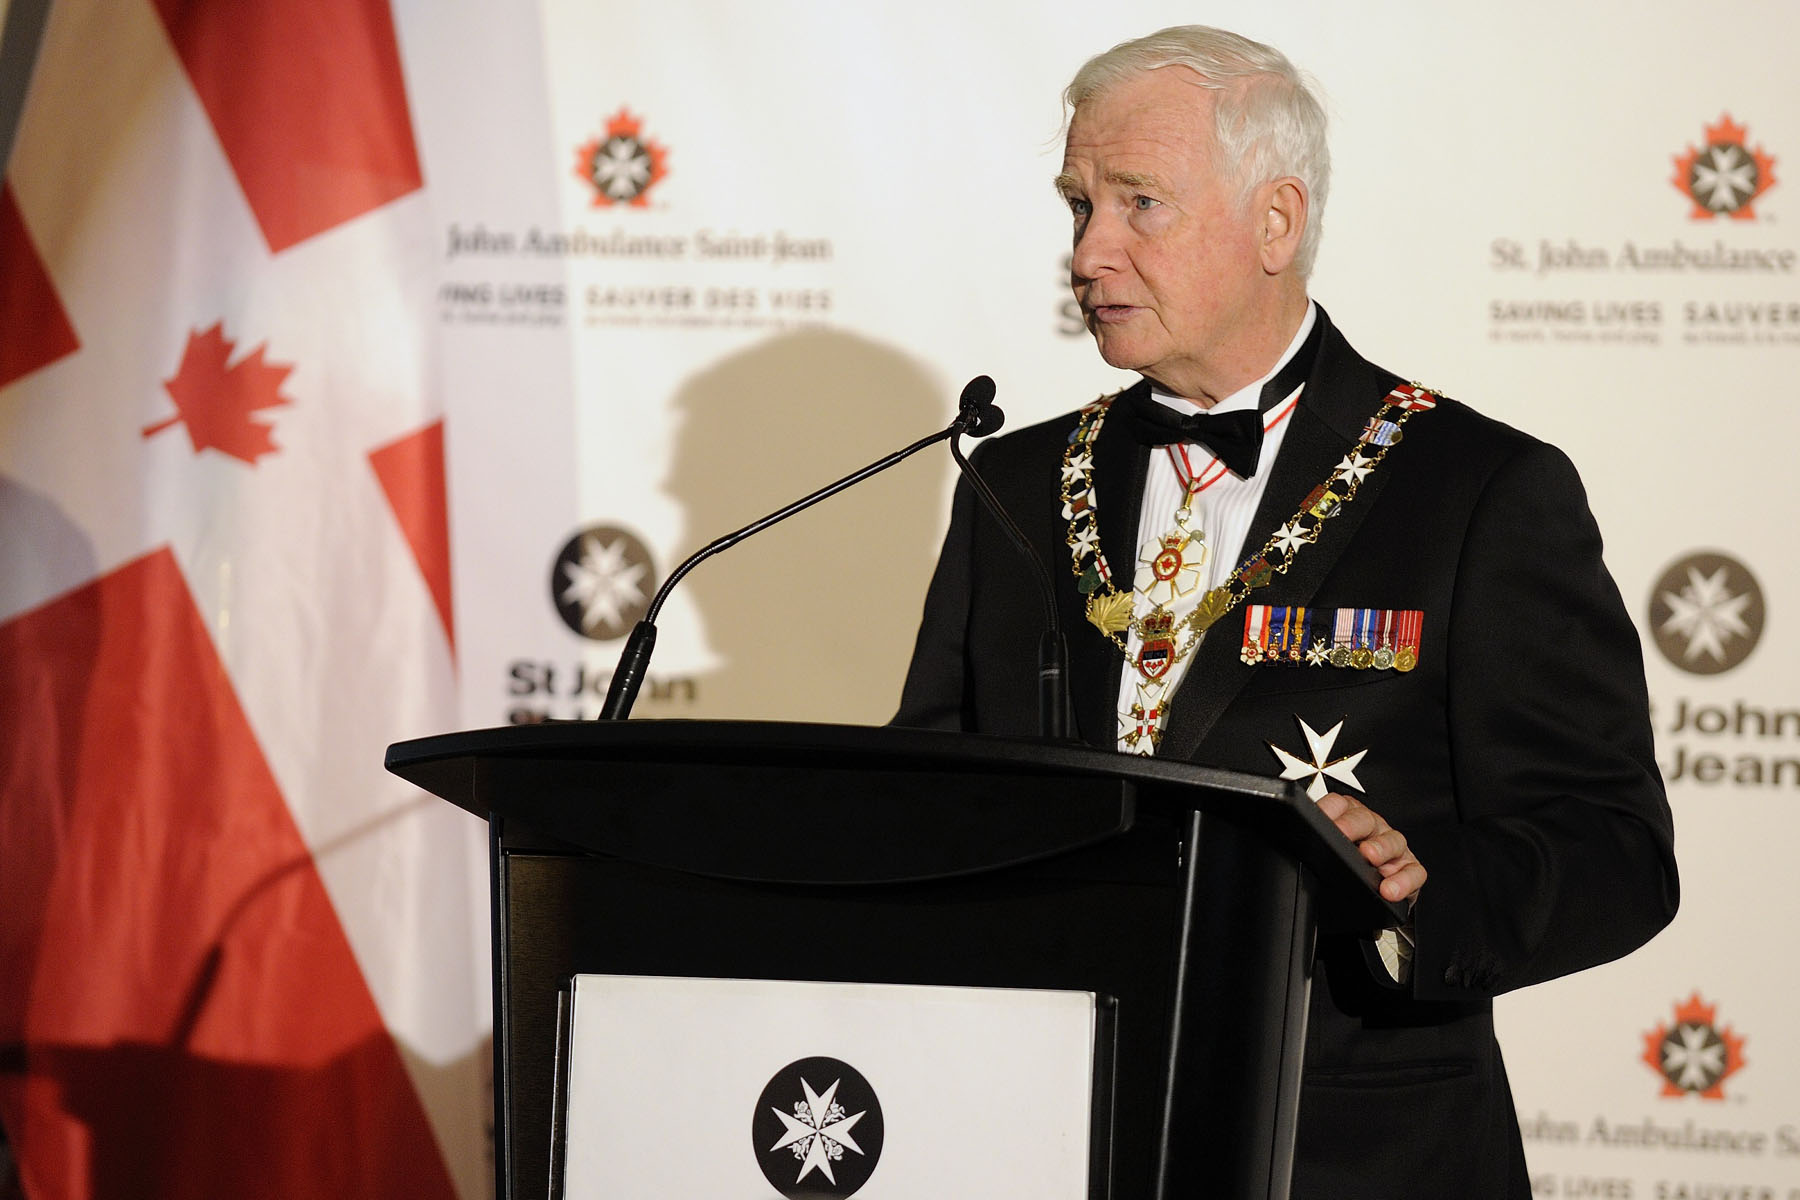 As Prior of the Priory of Canada, the Governor General then delivered an address which highlighted the important contributions, past and present, made by supporters of the Order of St. John and St. John Ambulance in Canada and around the world.